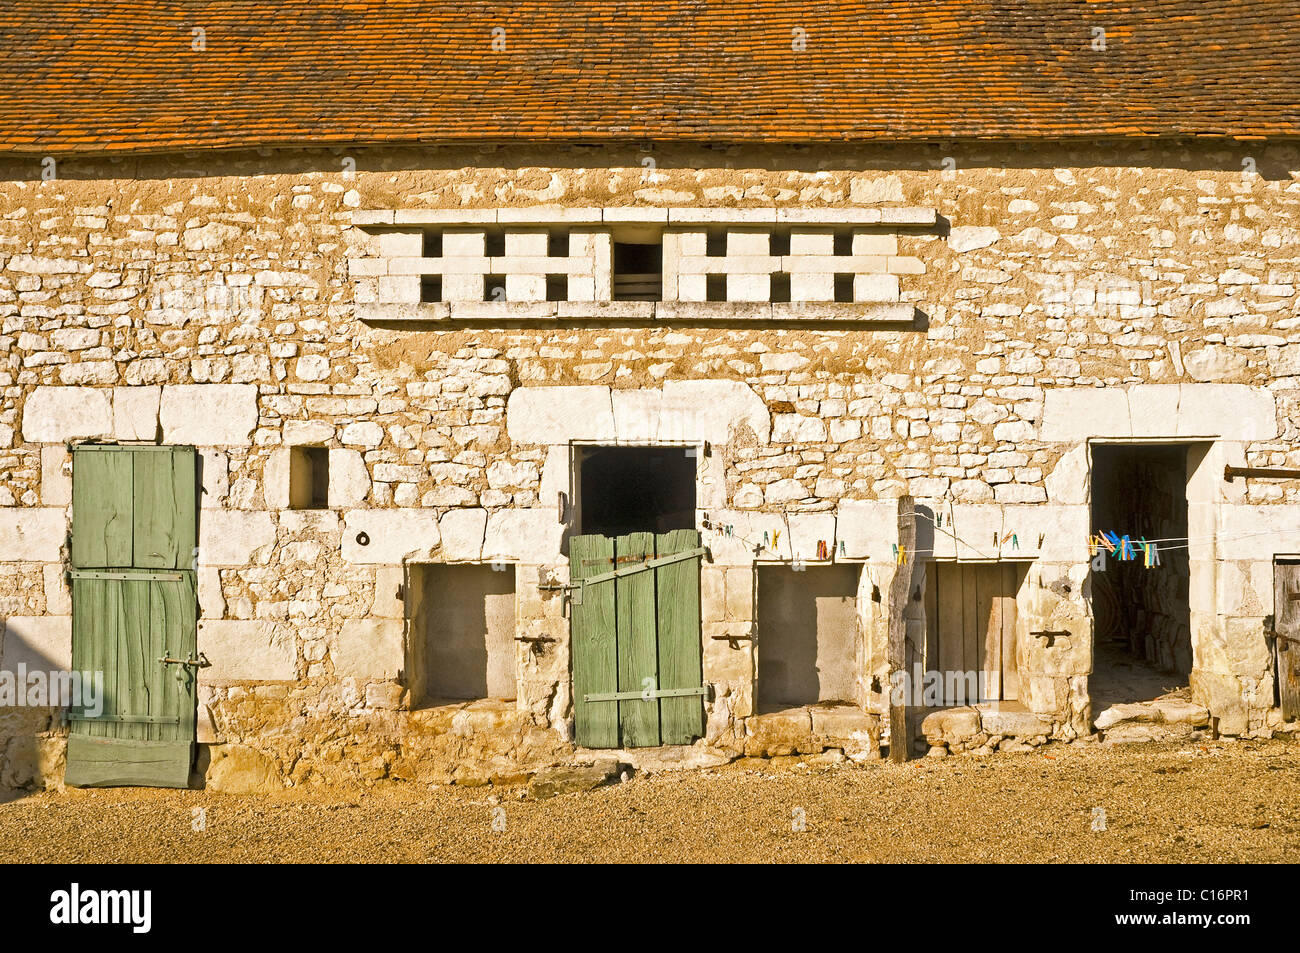 17th century barn, stables and pigeon loft - Indre, France. - Stock Image